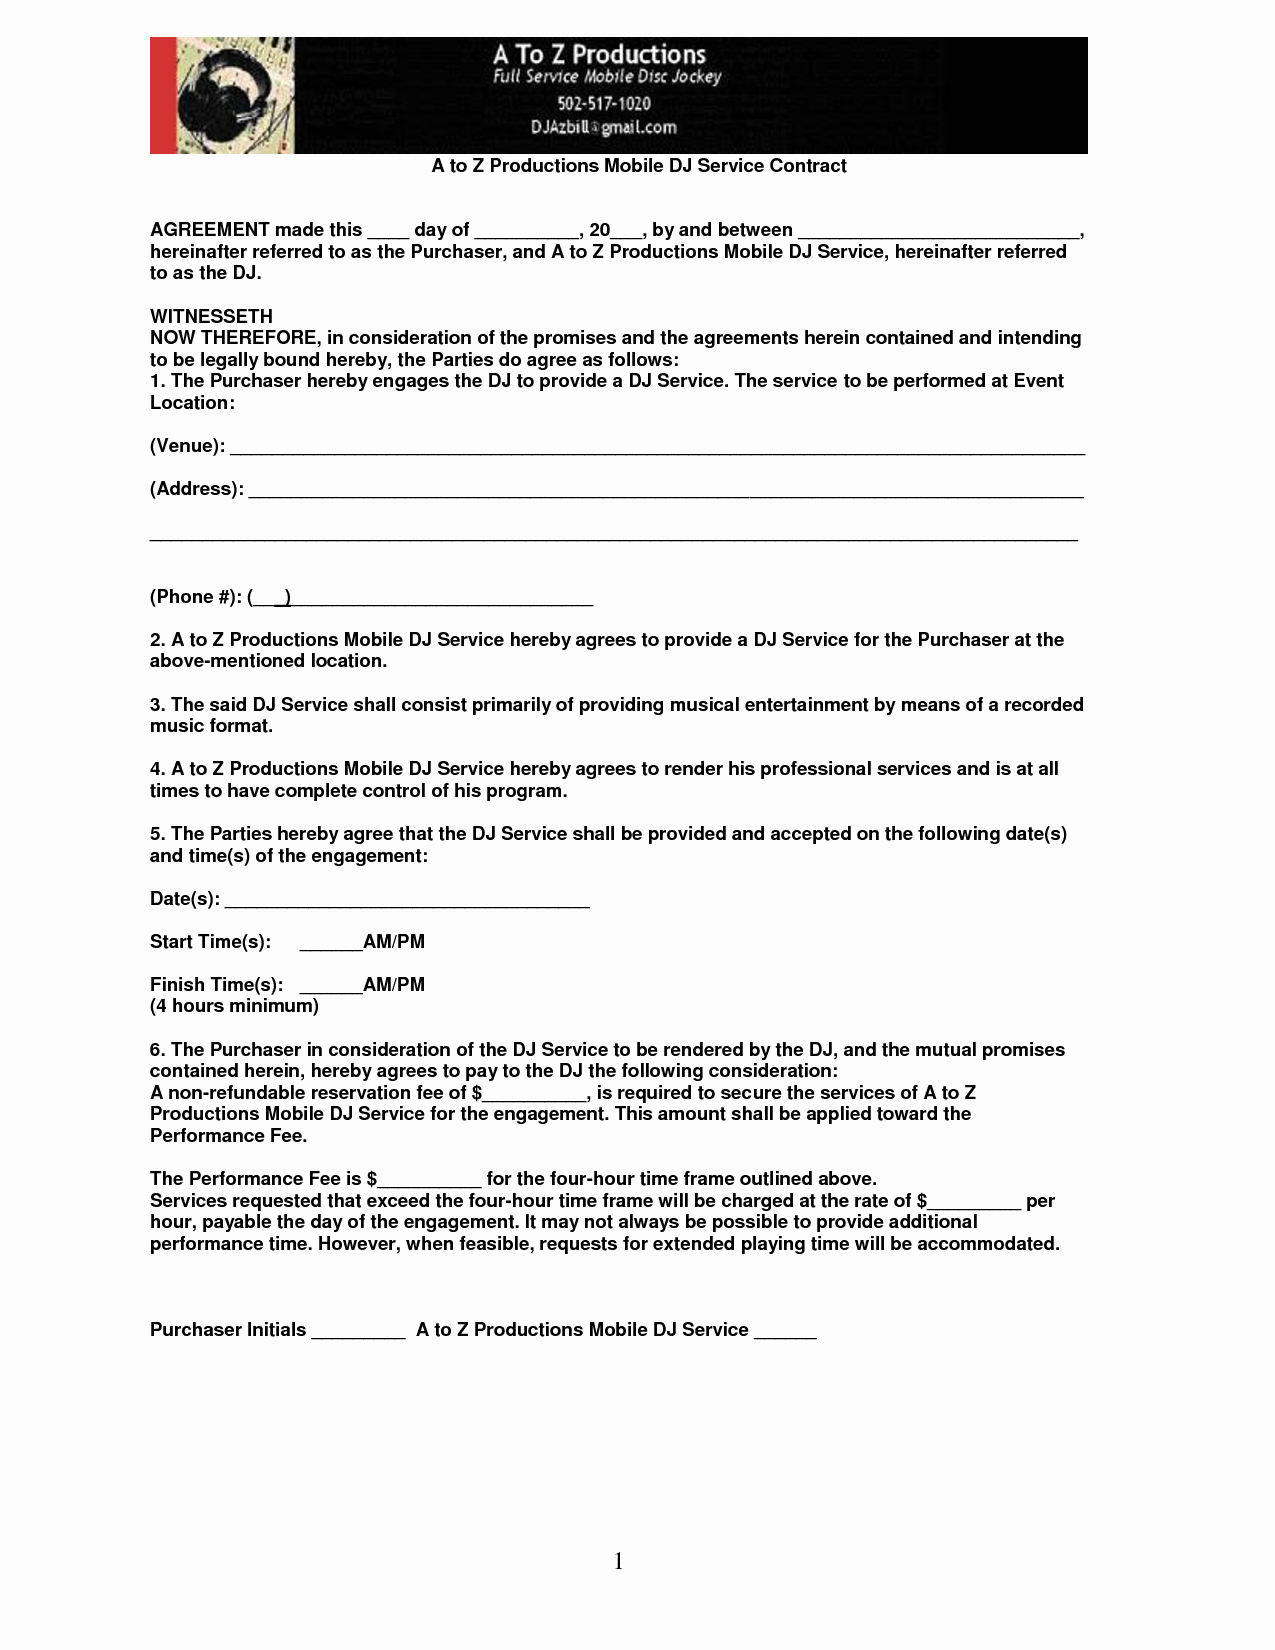 Disc Jockey Contracts Template Best Of Mobile Dj Contract Mobile Contract Pic 21